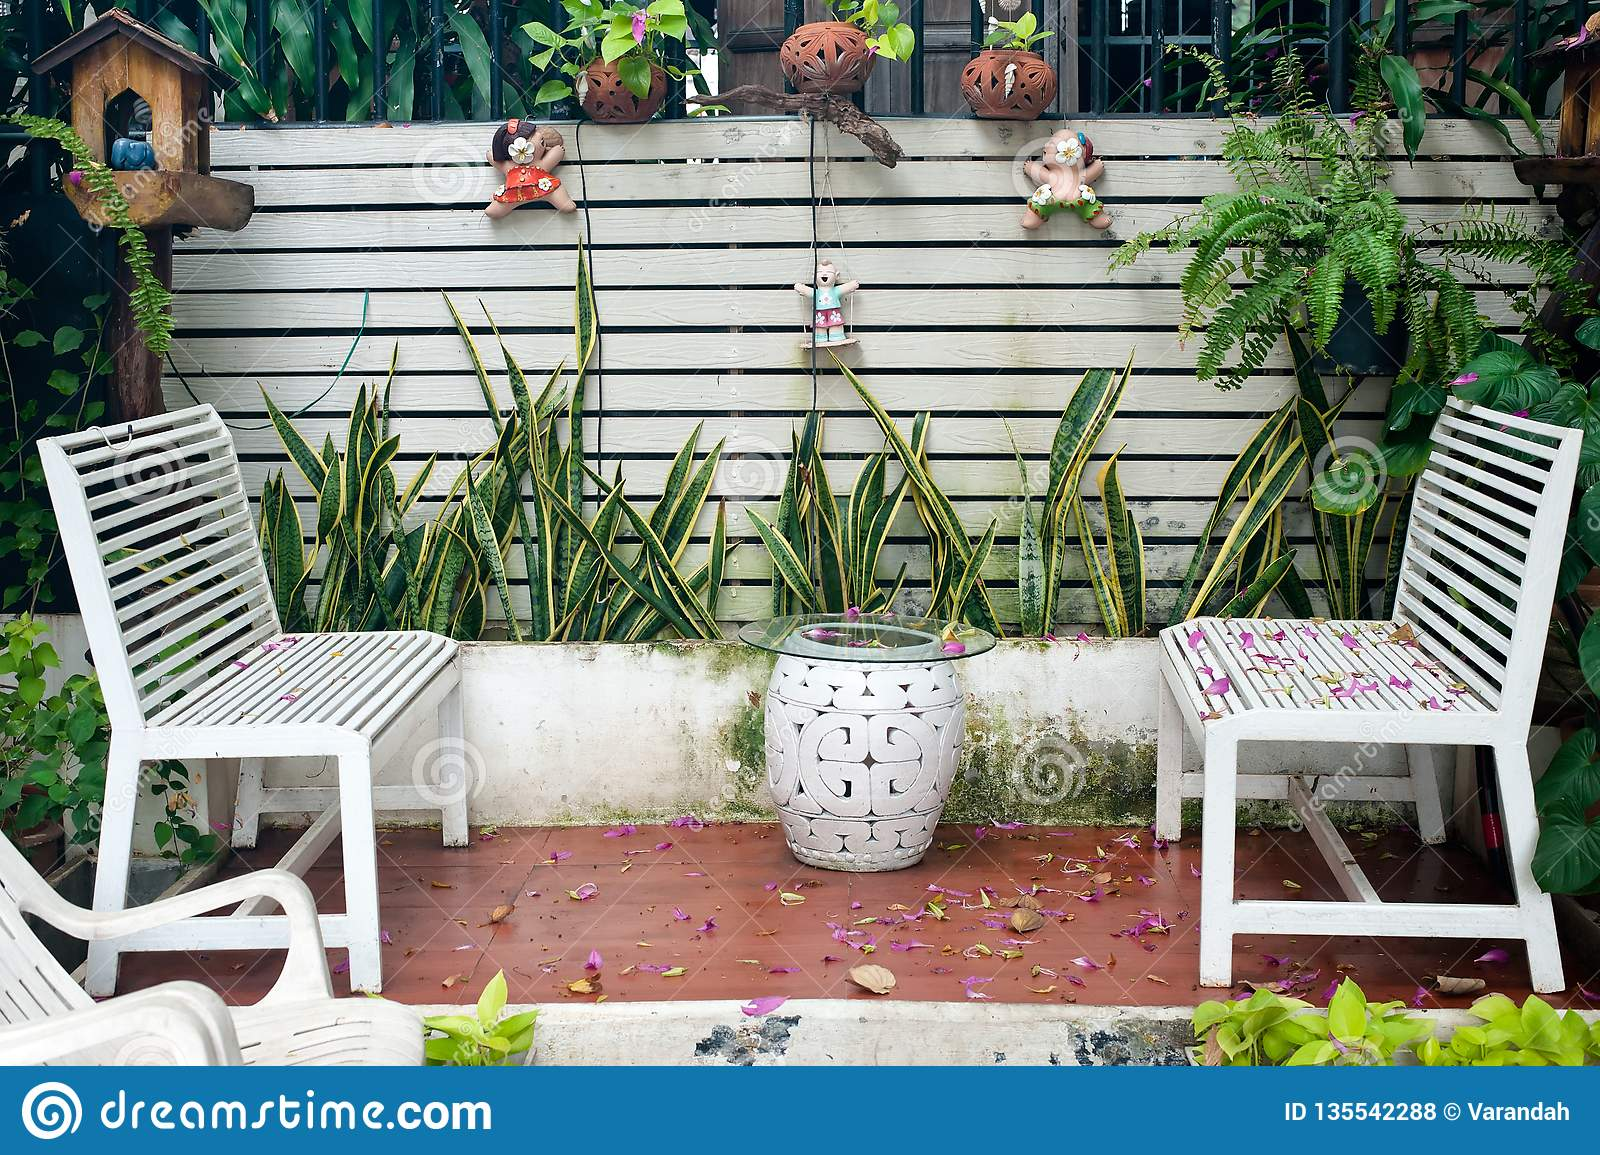 Small Tropical House Balcony With Green Plants In Pots And White Bench Stock Photo Image Of Leisure Decoration 135542288